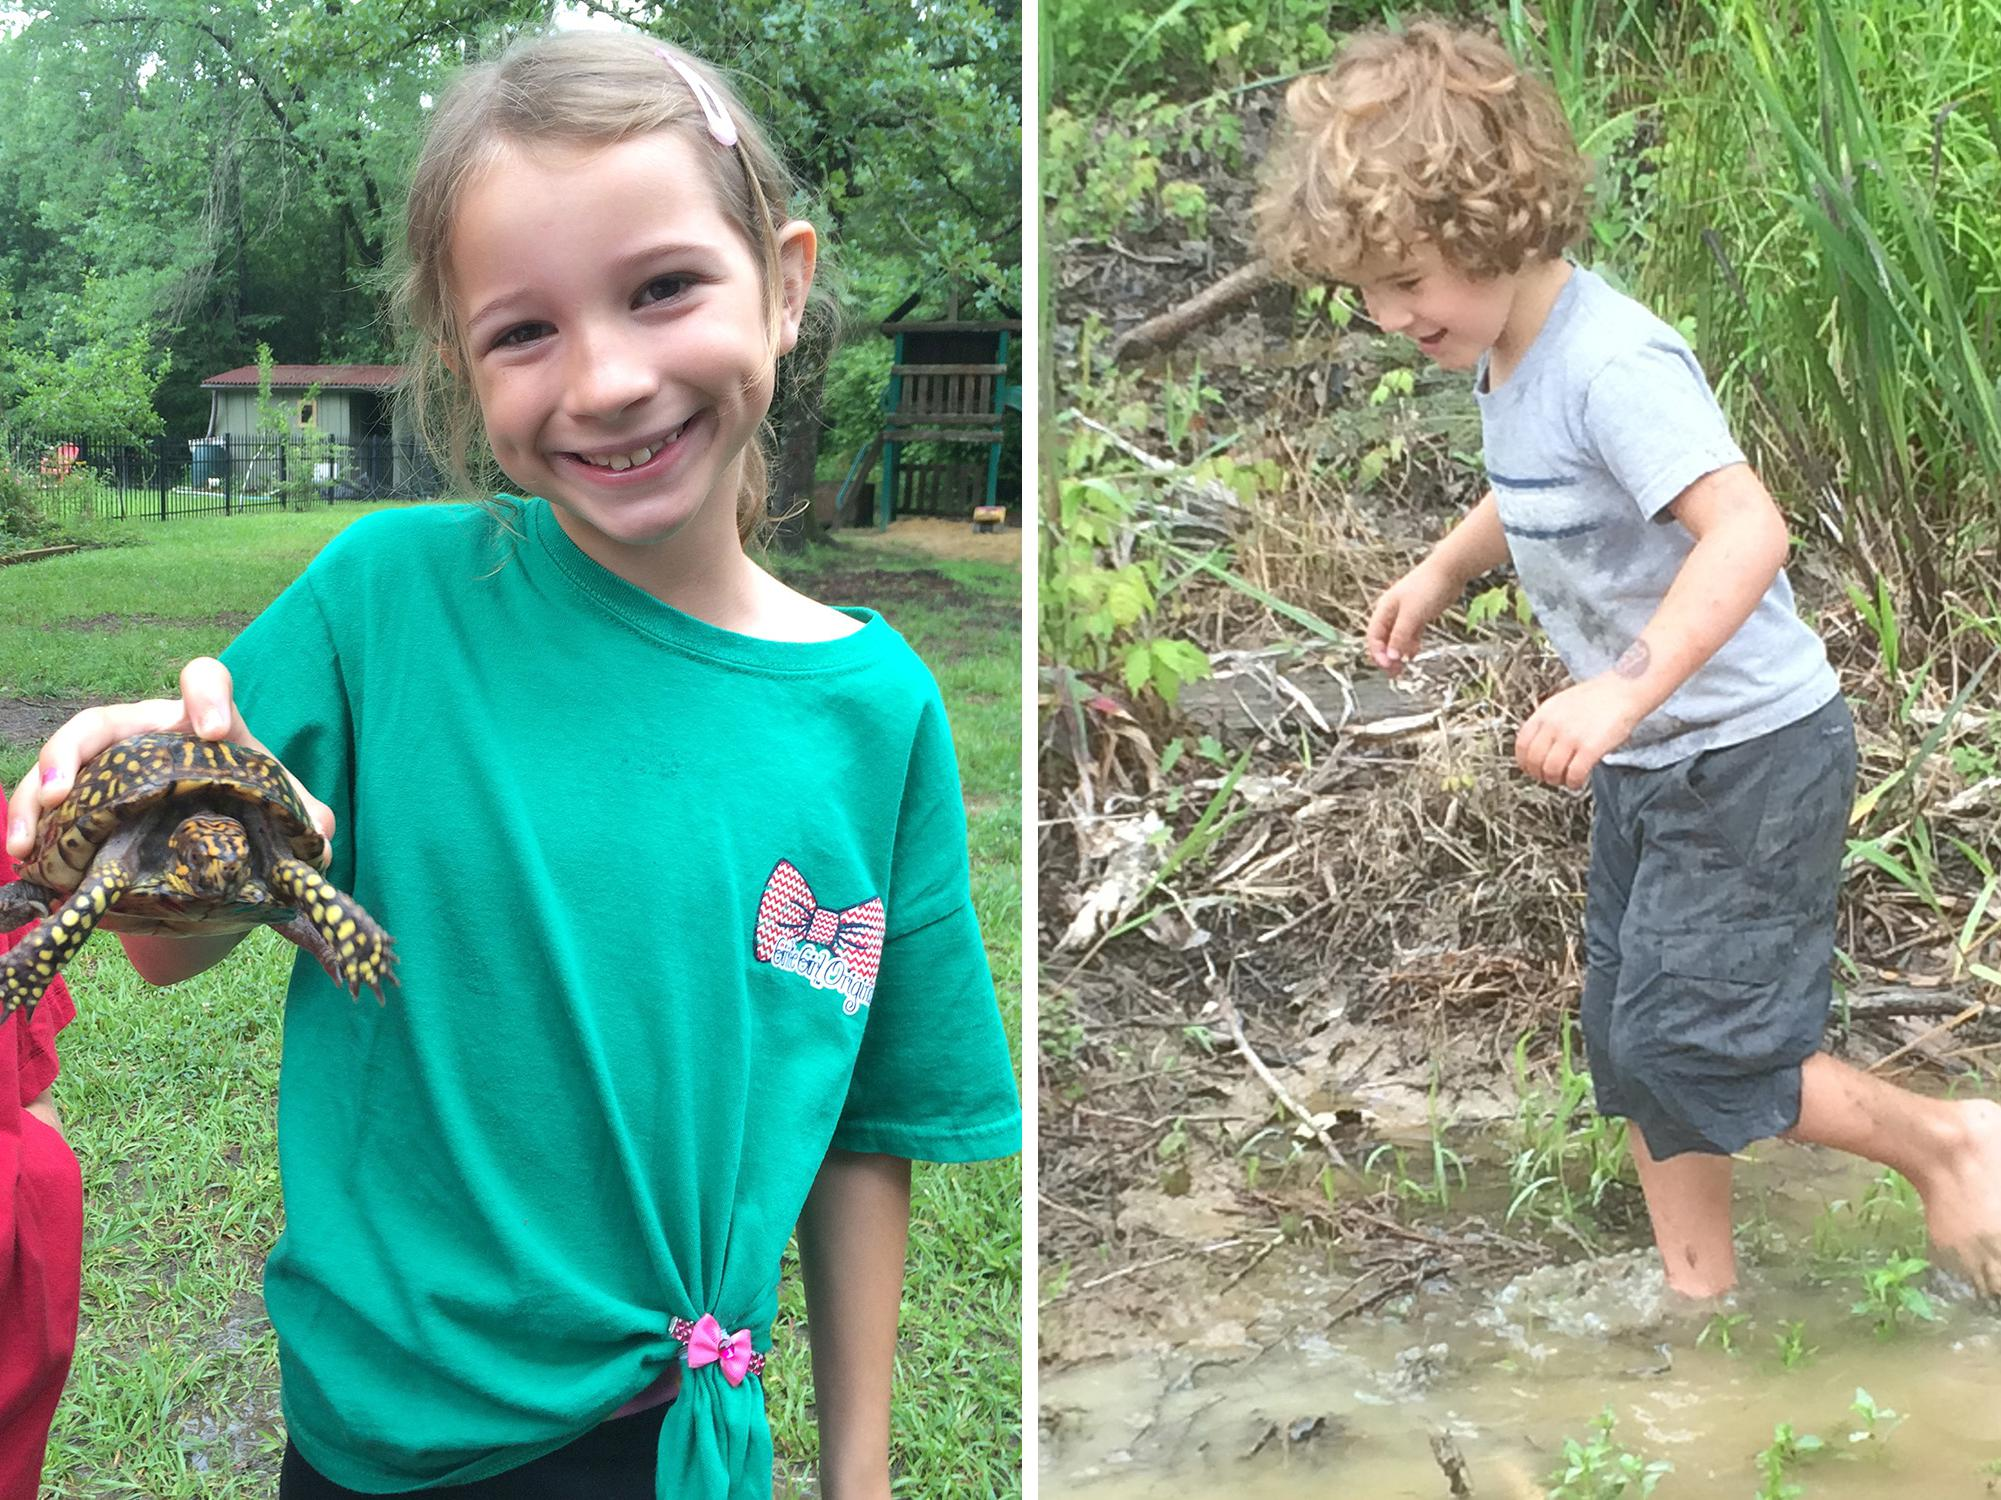 Children do not have to leave the city limits; they can explore nature in their own backyards. Eastern box turtles (left), which are native to Mississippi, are land dwellers and do not even need ponds to find friends who want to play. Getting dirty is half the fun for children exploring and playing in the great outdoors (right). Rain may drive families inside for a time, but they provide some great water features after the thunder and lightning have passed. (Photos by MSU Extension Service/Evan O'Donnell)